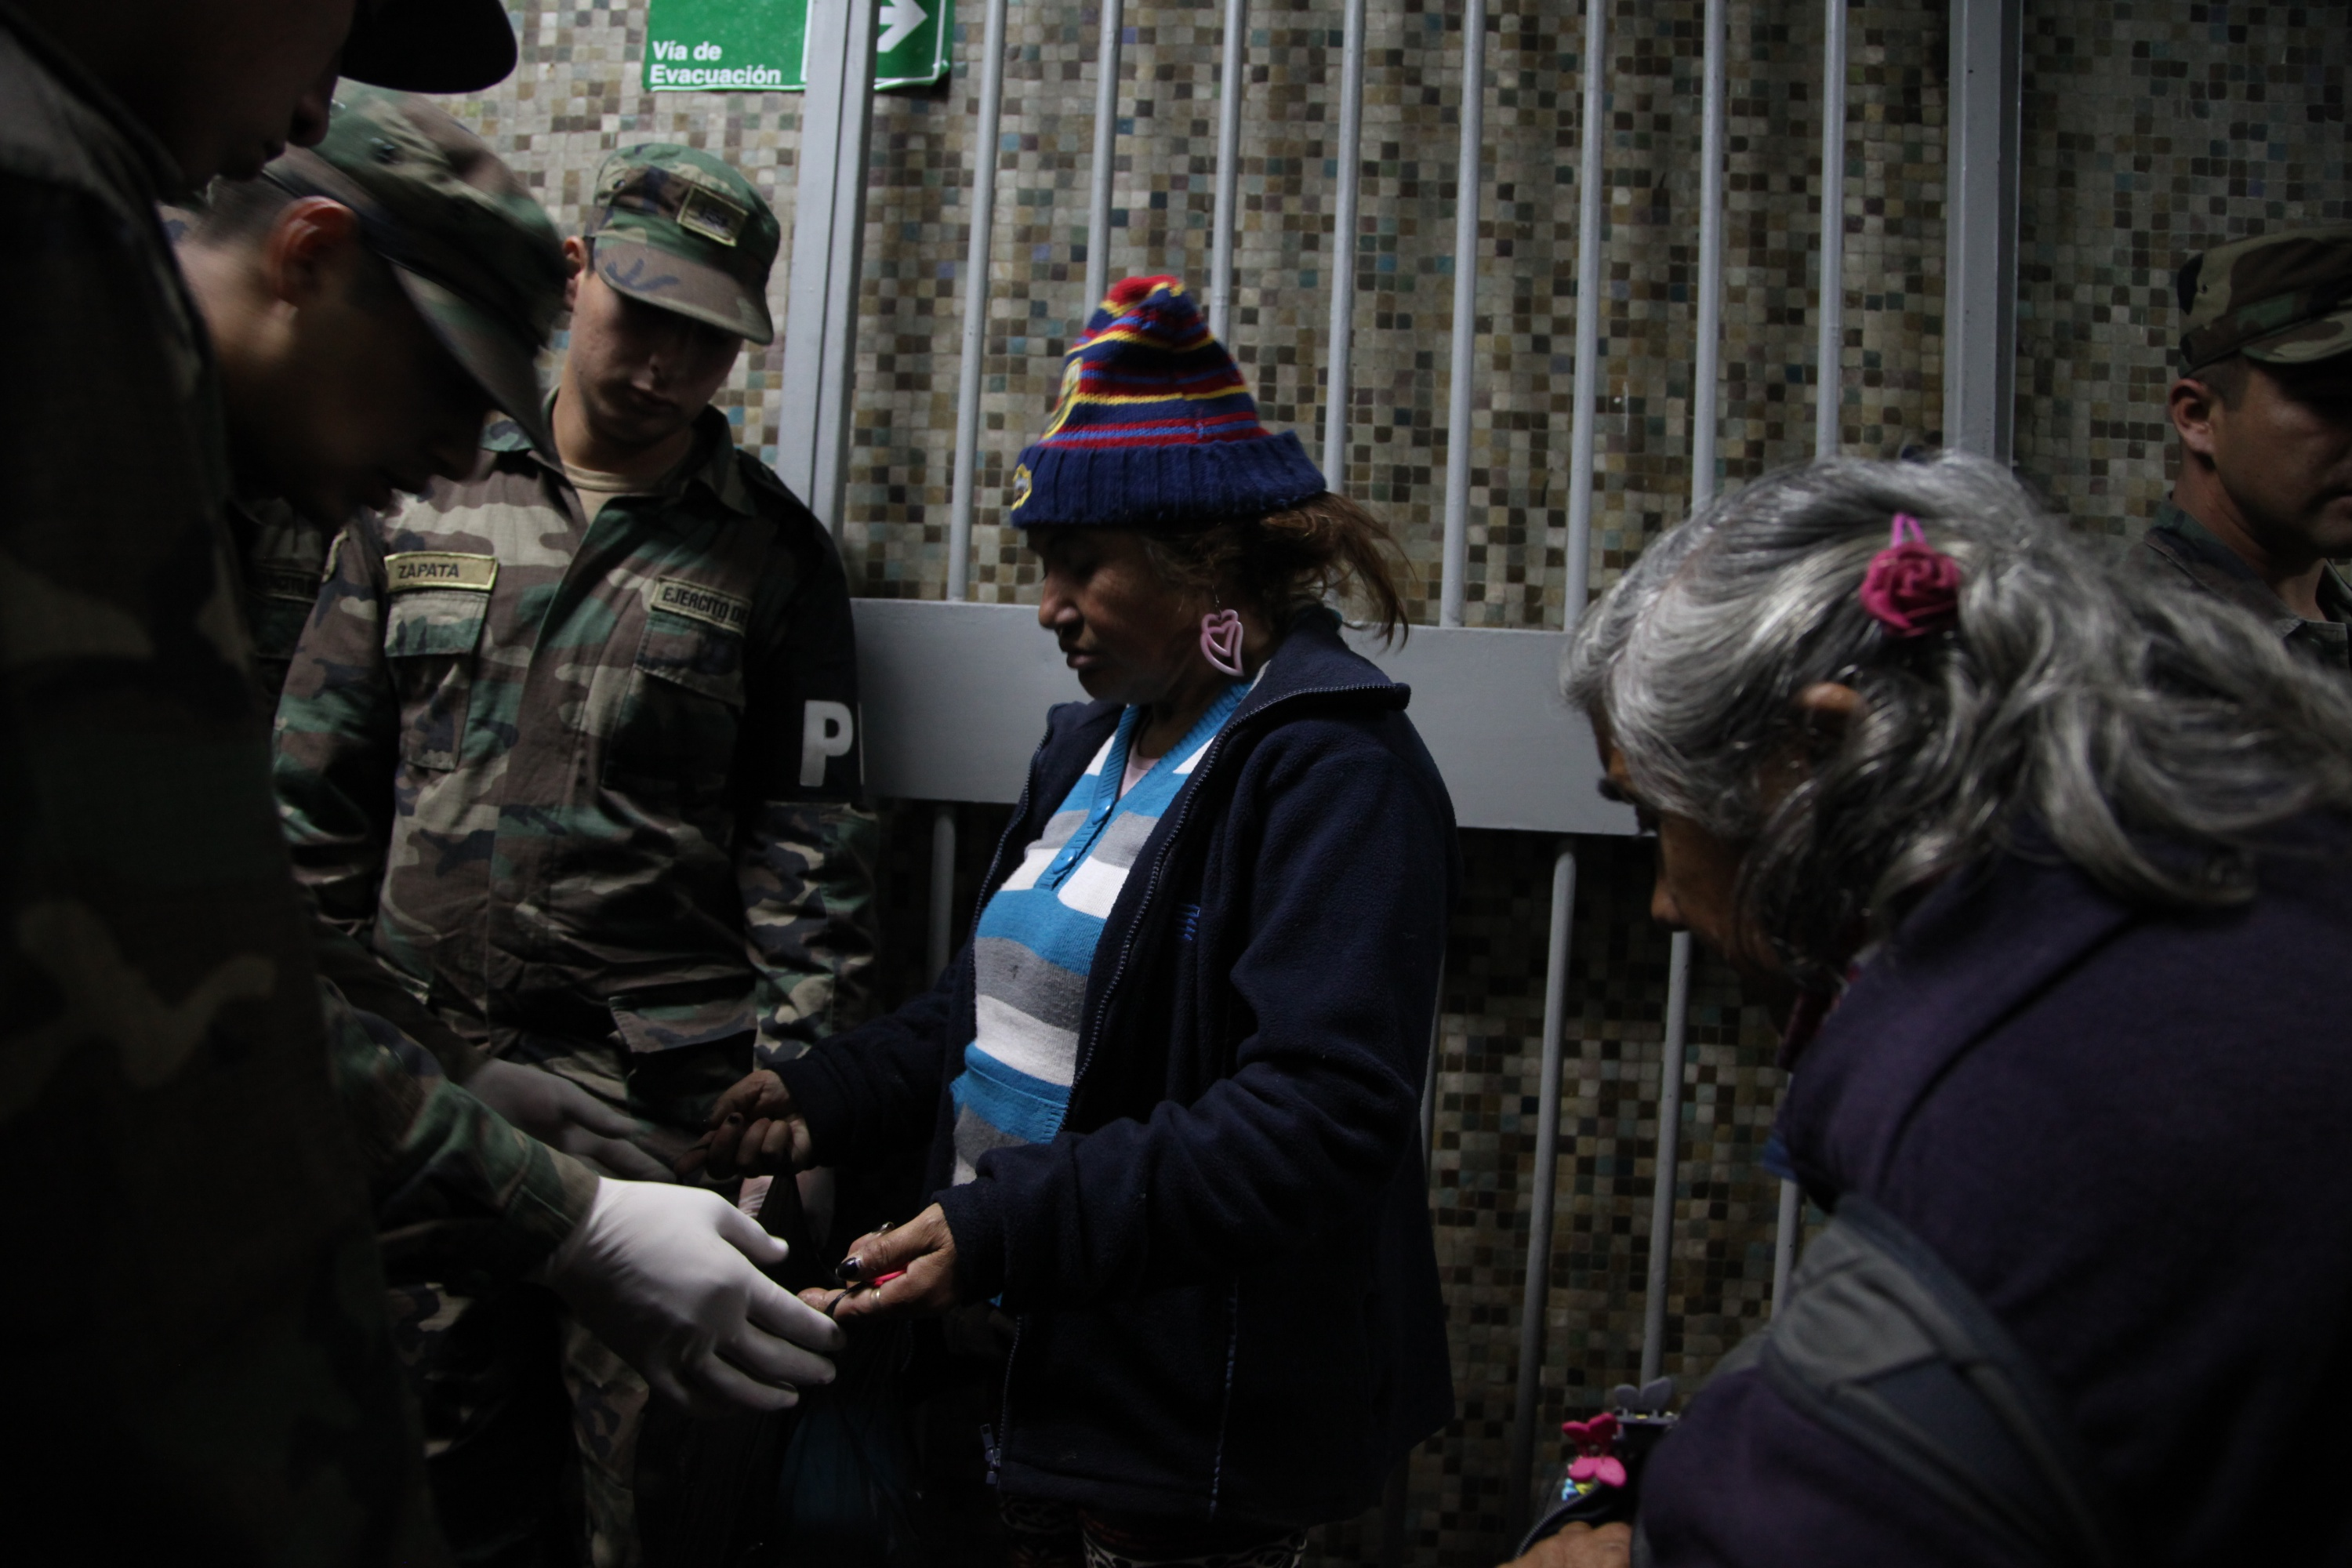 A woman opens her bag for soldiers to search through before entering a homeless shelter at the indoor stadium Estadio Victor Jara.